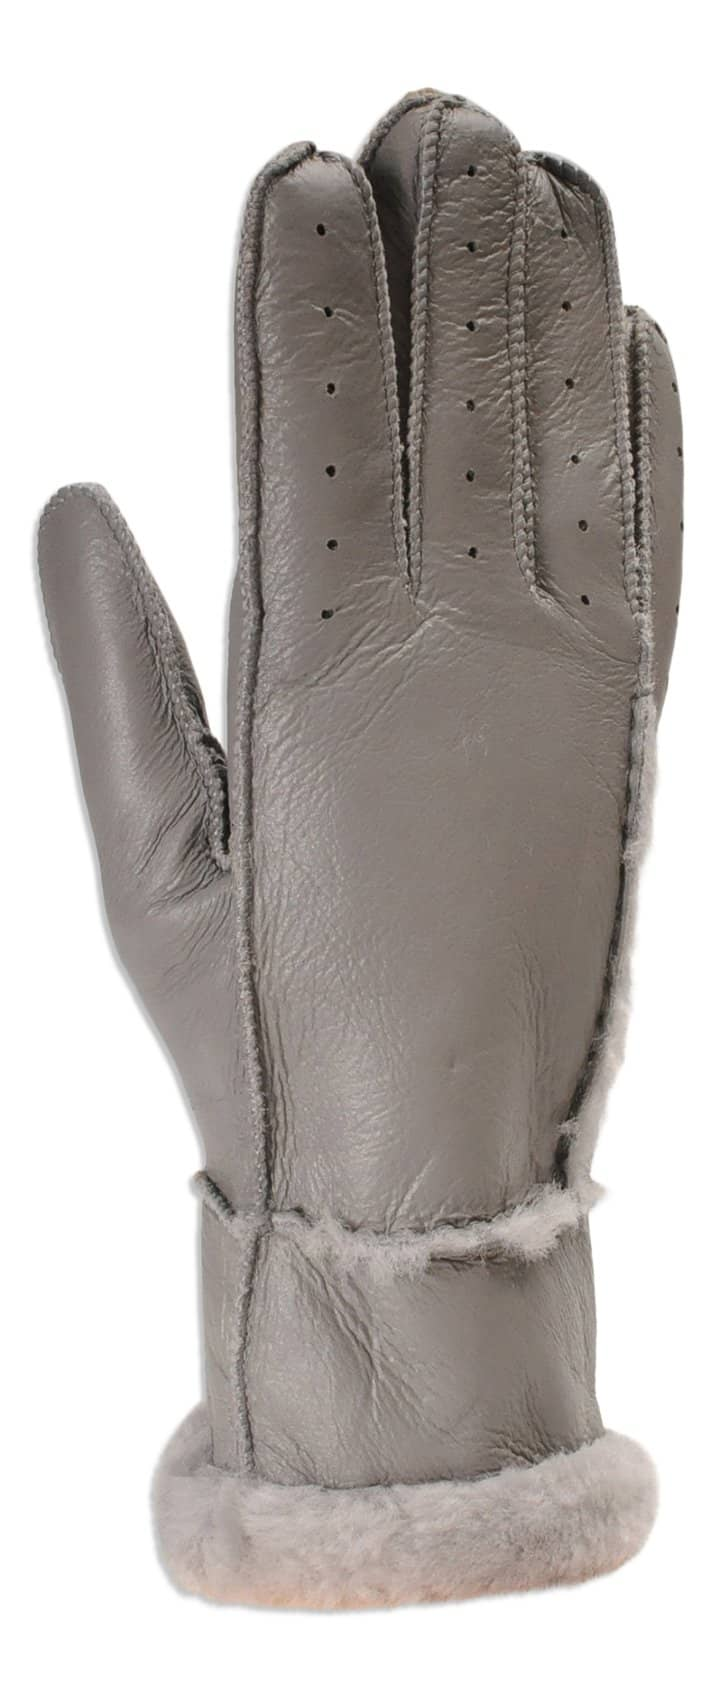 Nordvek womens sheepskin driving gloves 330-100 black pair